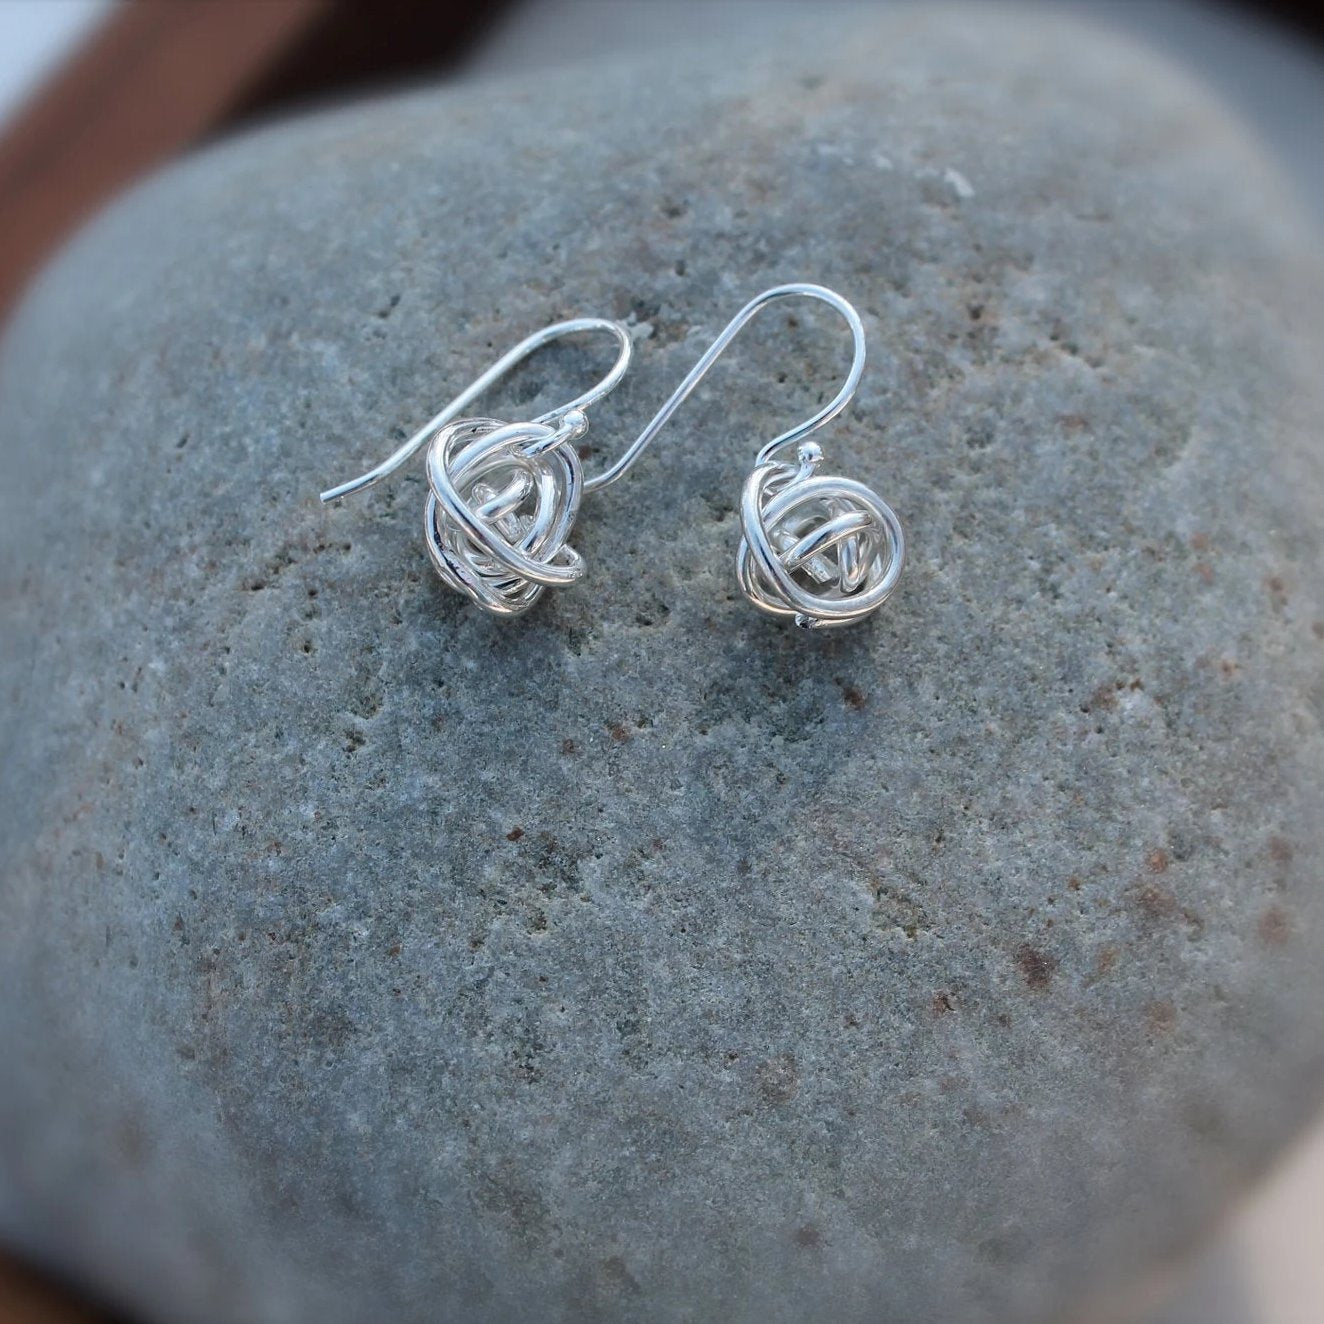 Tumbleweed Knot Earrings in Sterling Silver